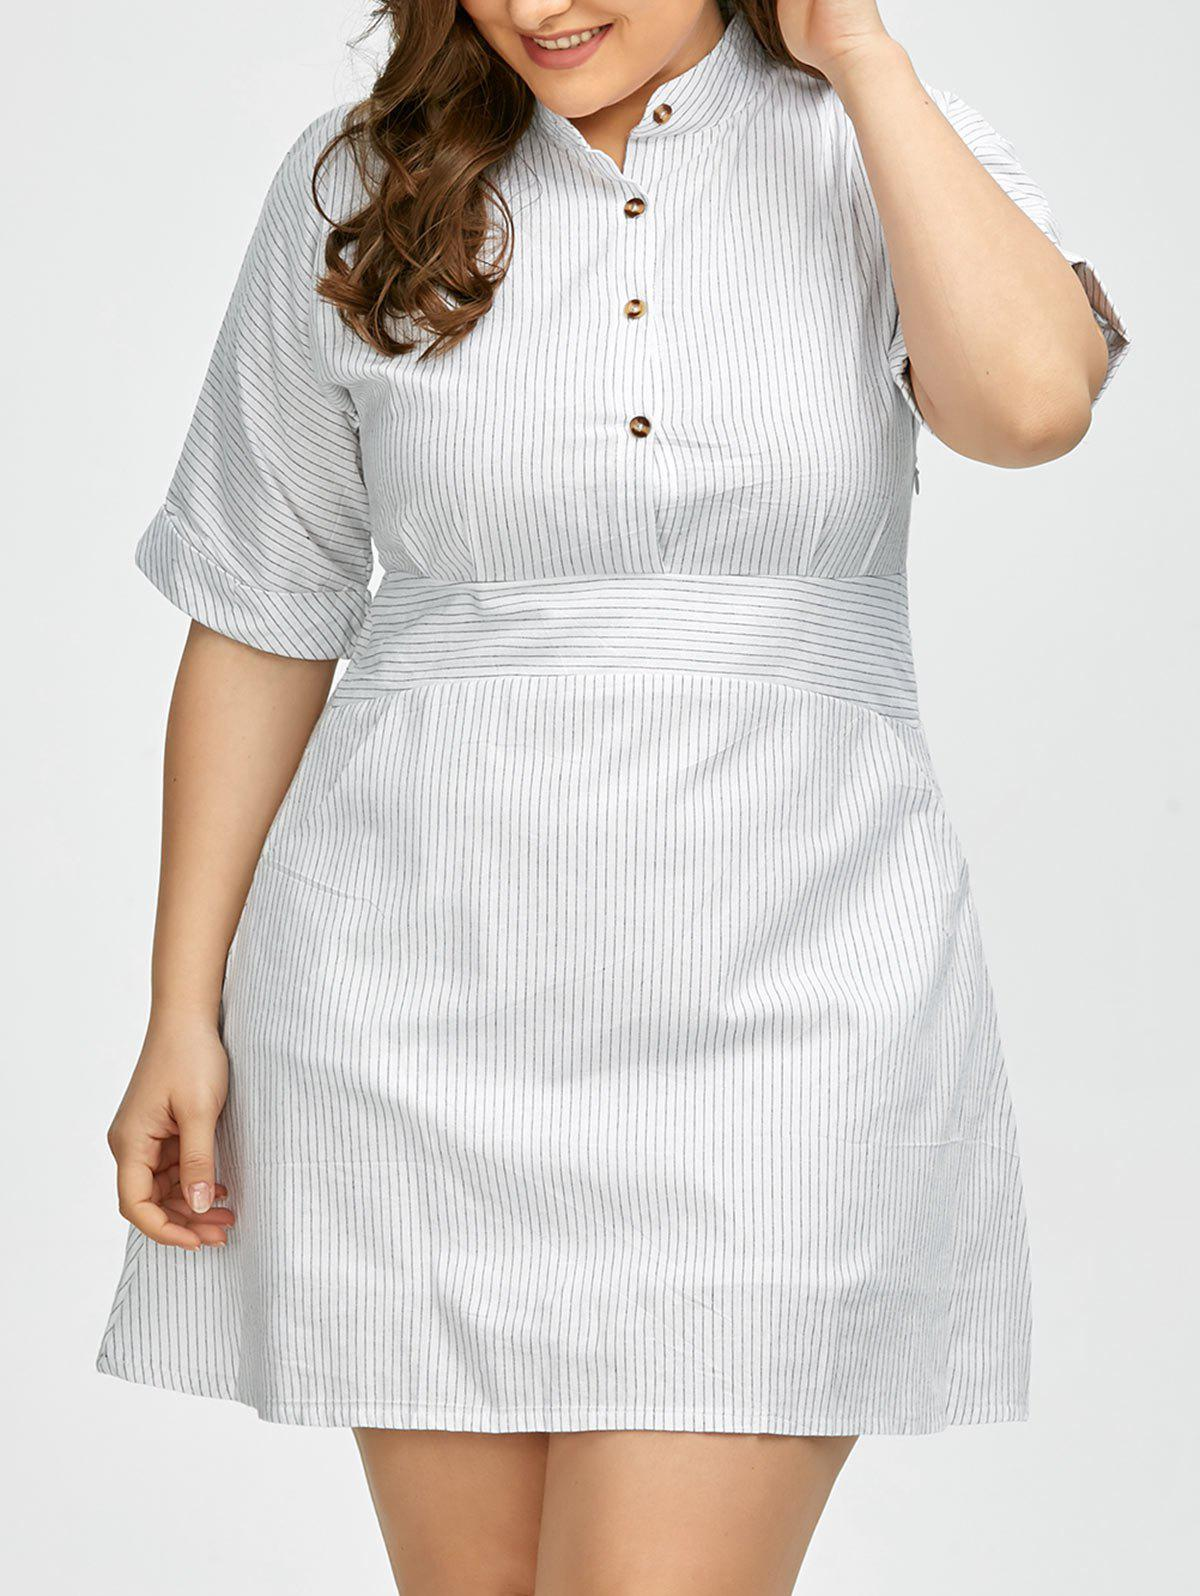 White 3xl plus size half button pinstripe shirt dress for Size 15 dress shirt